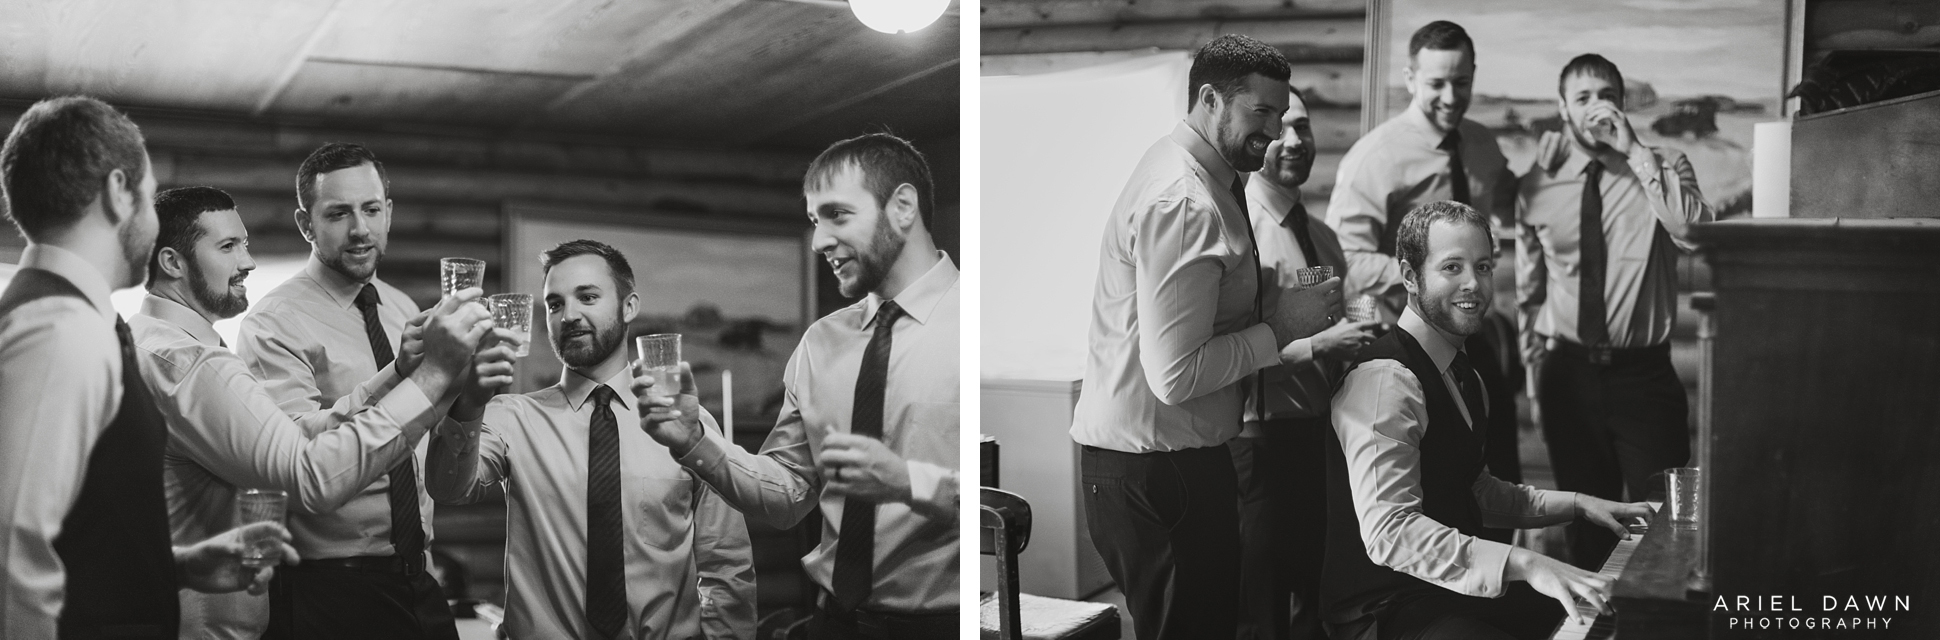 The groom and groomsmen's time getting ready was nothing but relaxing and filled with merriment of having a glass of whiskey and singing songs.